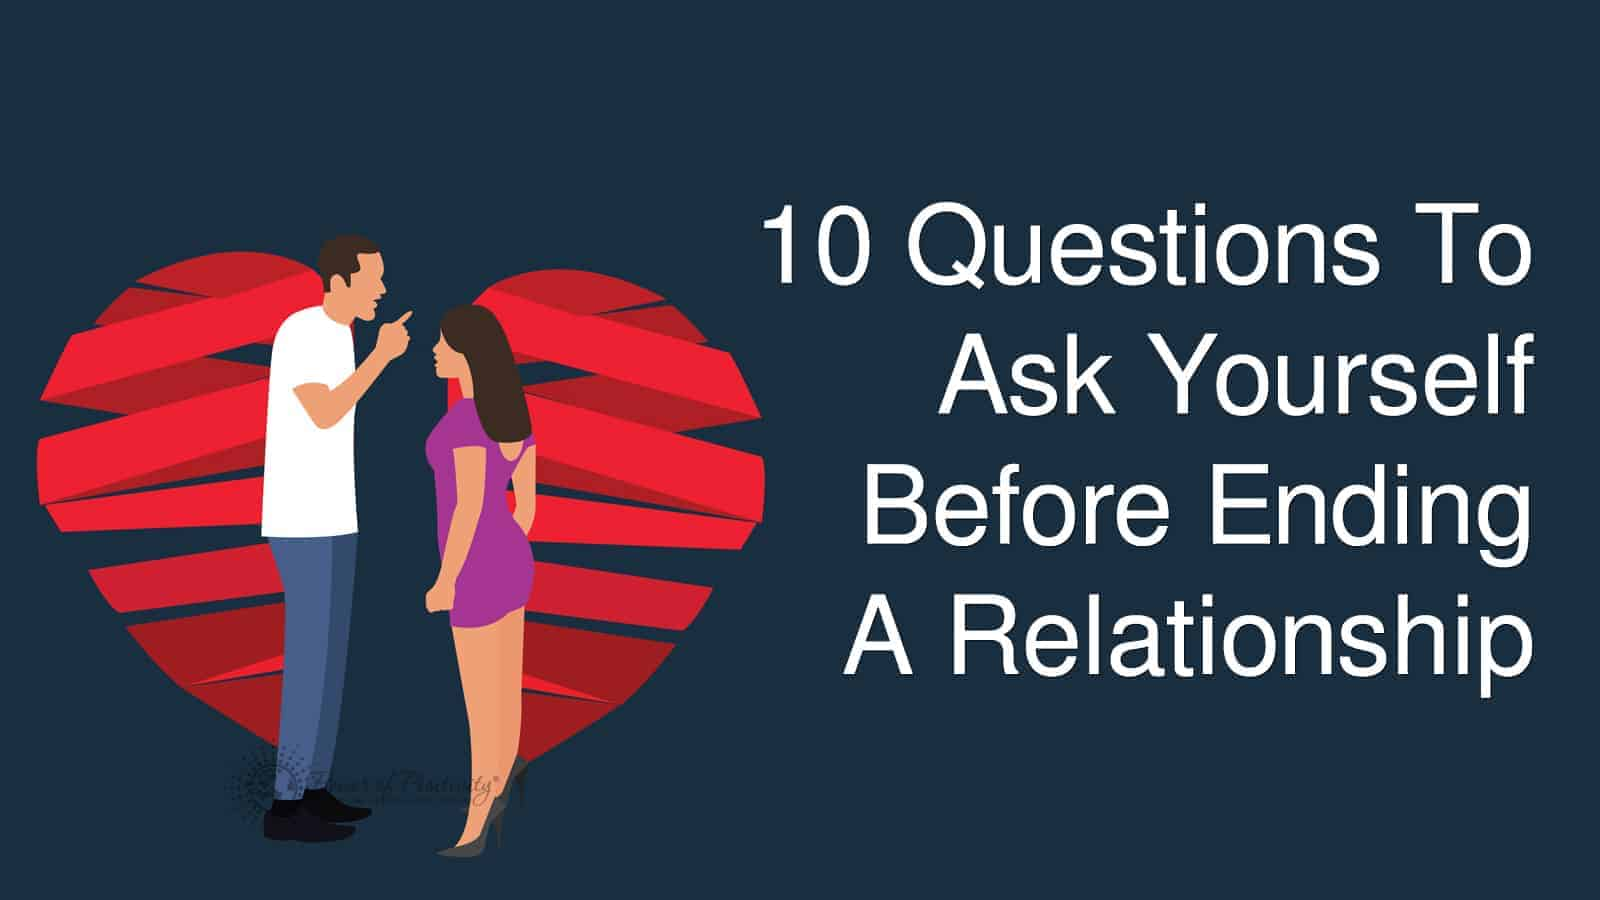 10 questions 10 questions to ask when choosing your financial advisor how to effectively  select a financial advisor to fit your needs and long-term financial.